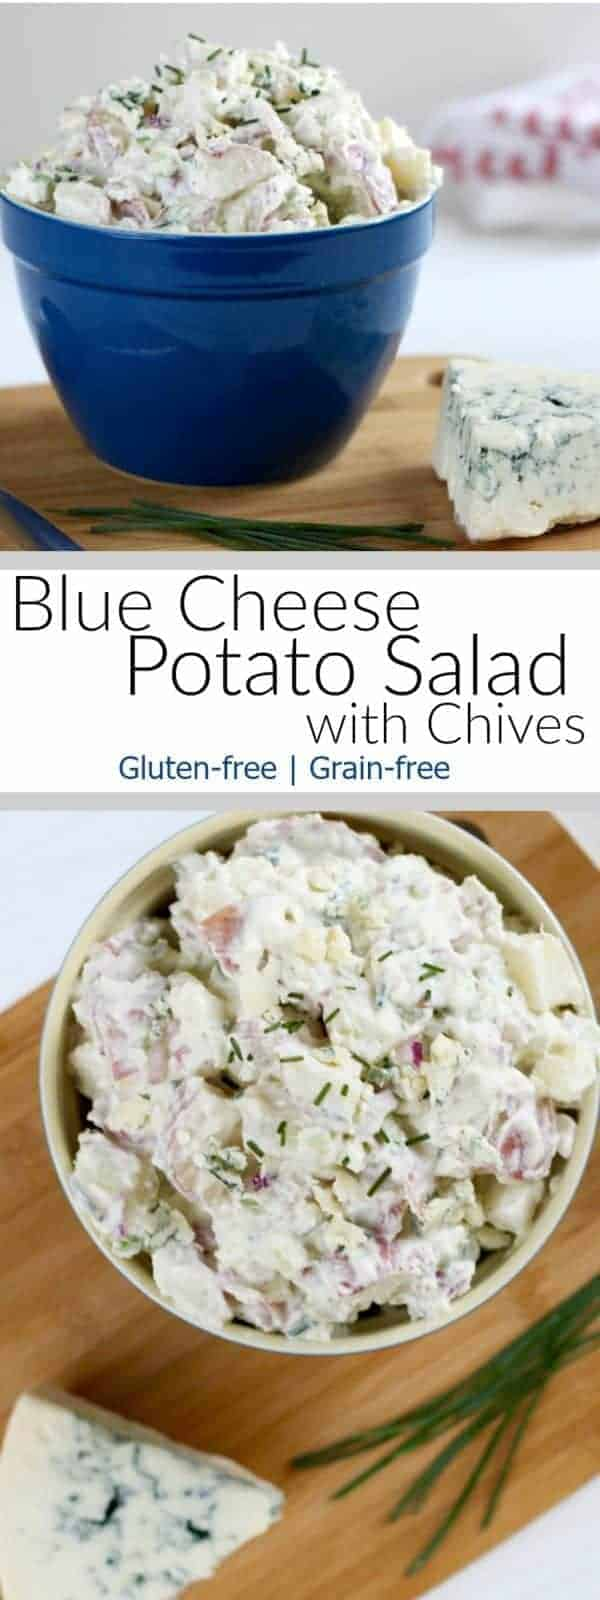 Blue Cheese Potato Salad with Chives | This potato salad is so good it made me late for my own wedding! https://therealfoodrds.com/blue-cheese-potato-salad-with-chives/